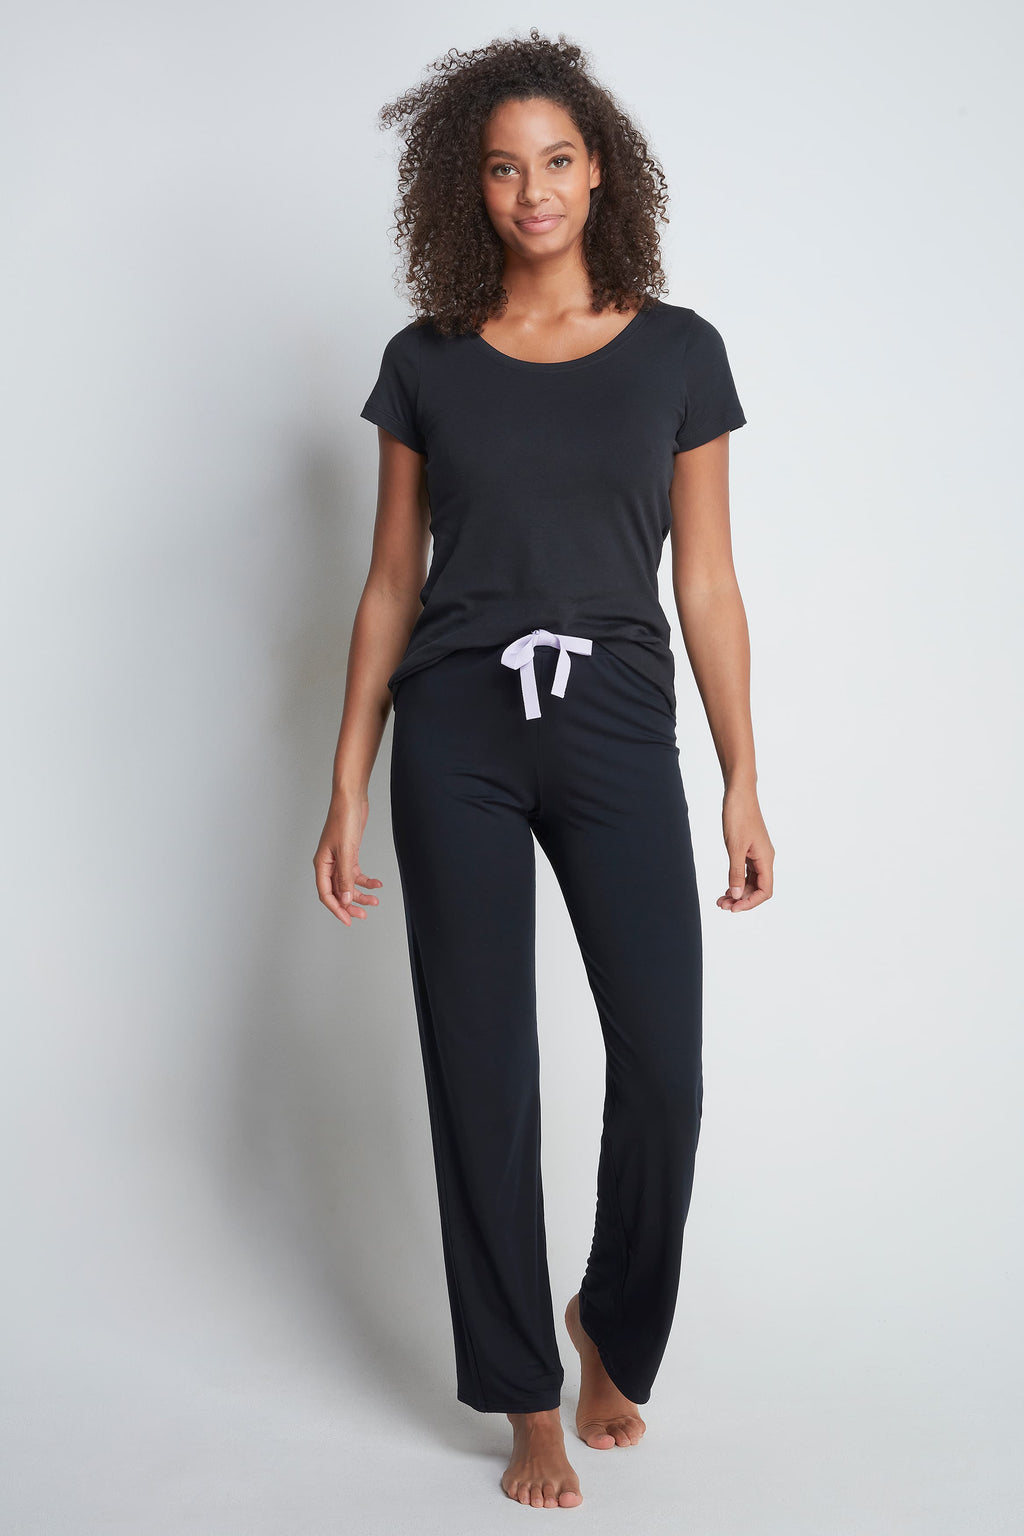 Lounge Trousers Trousers / Leggings Lavender Hill Clothing